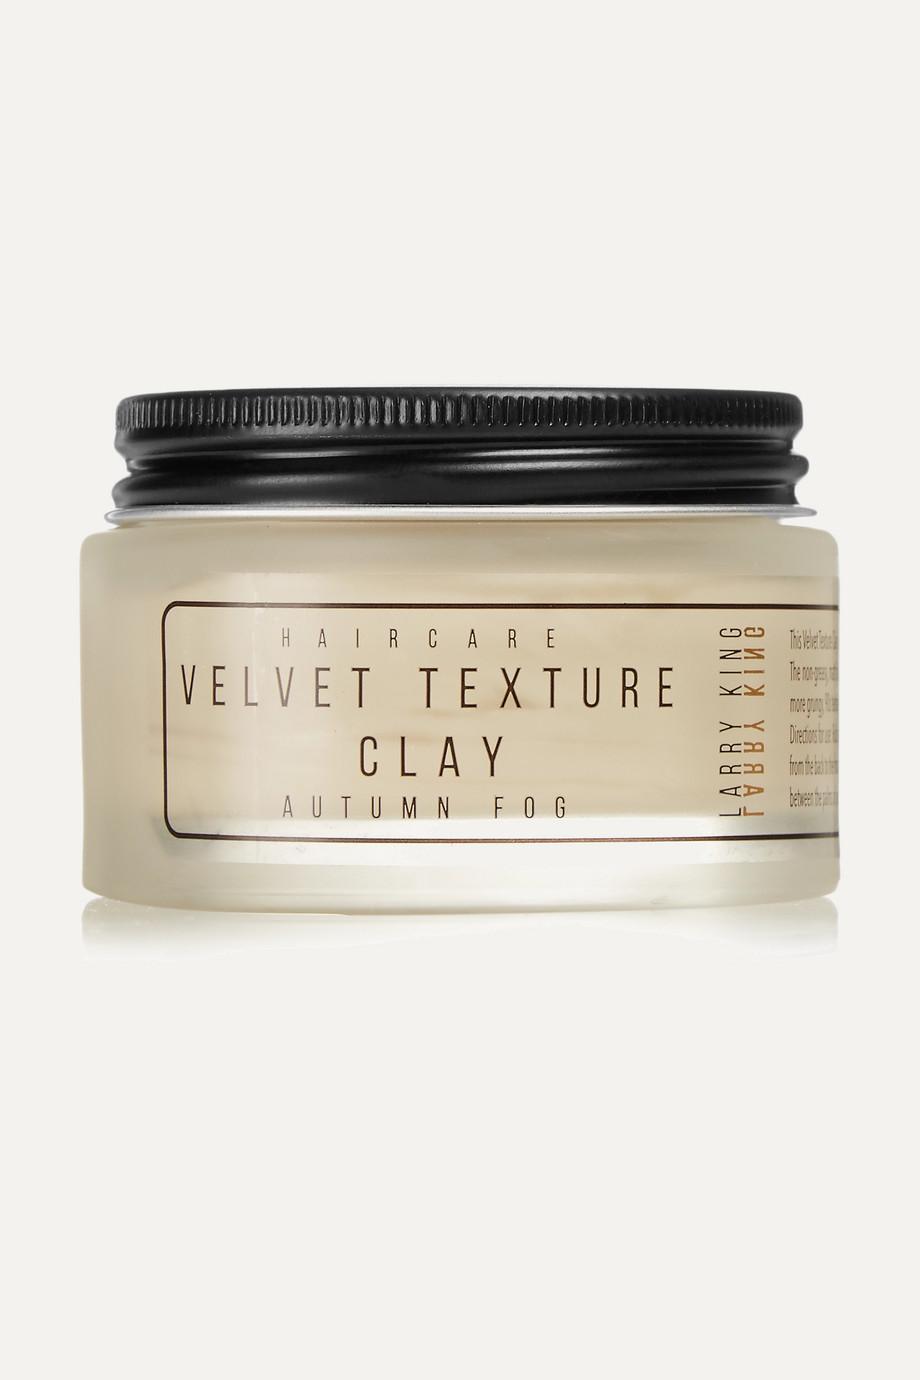 Larry King Velvet Texture Clay, 50 g – Haarwachs